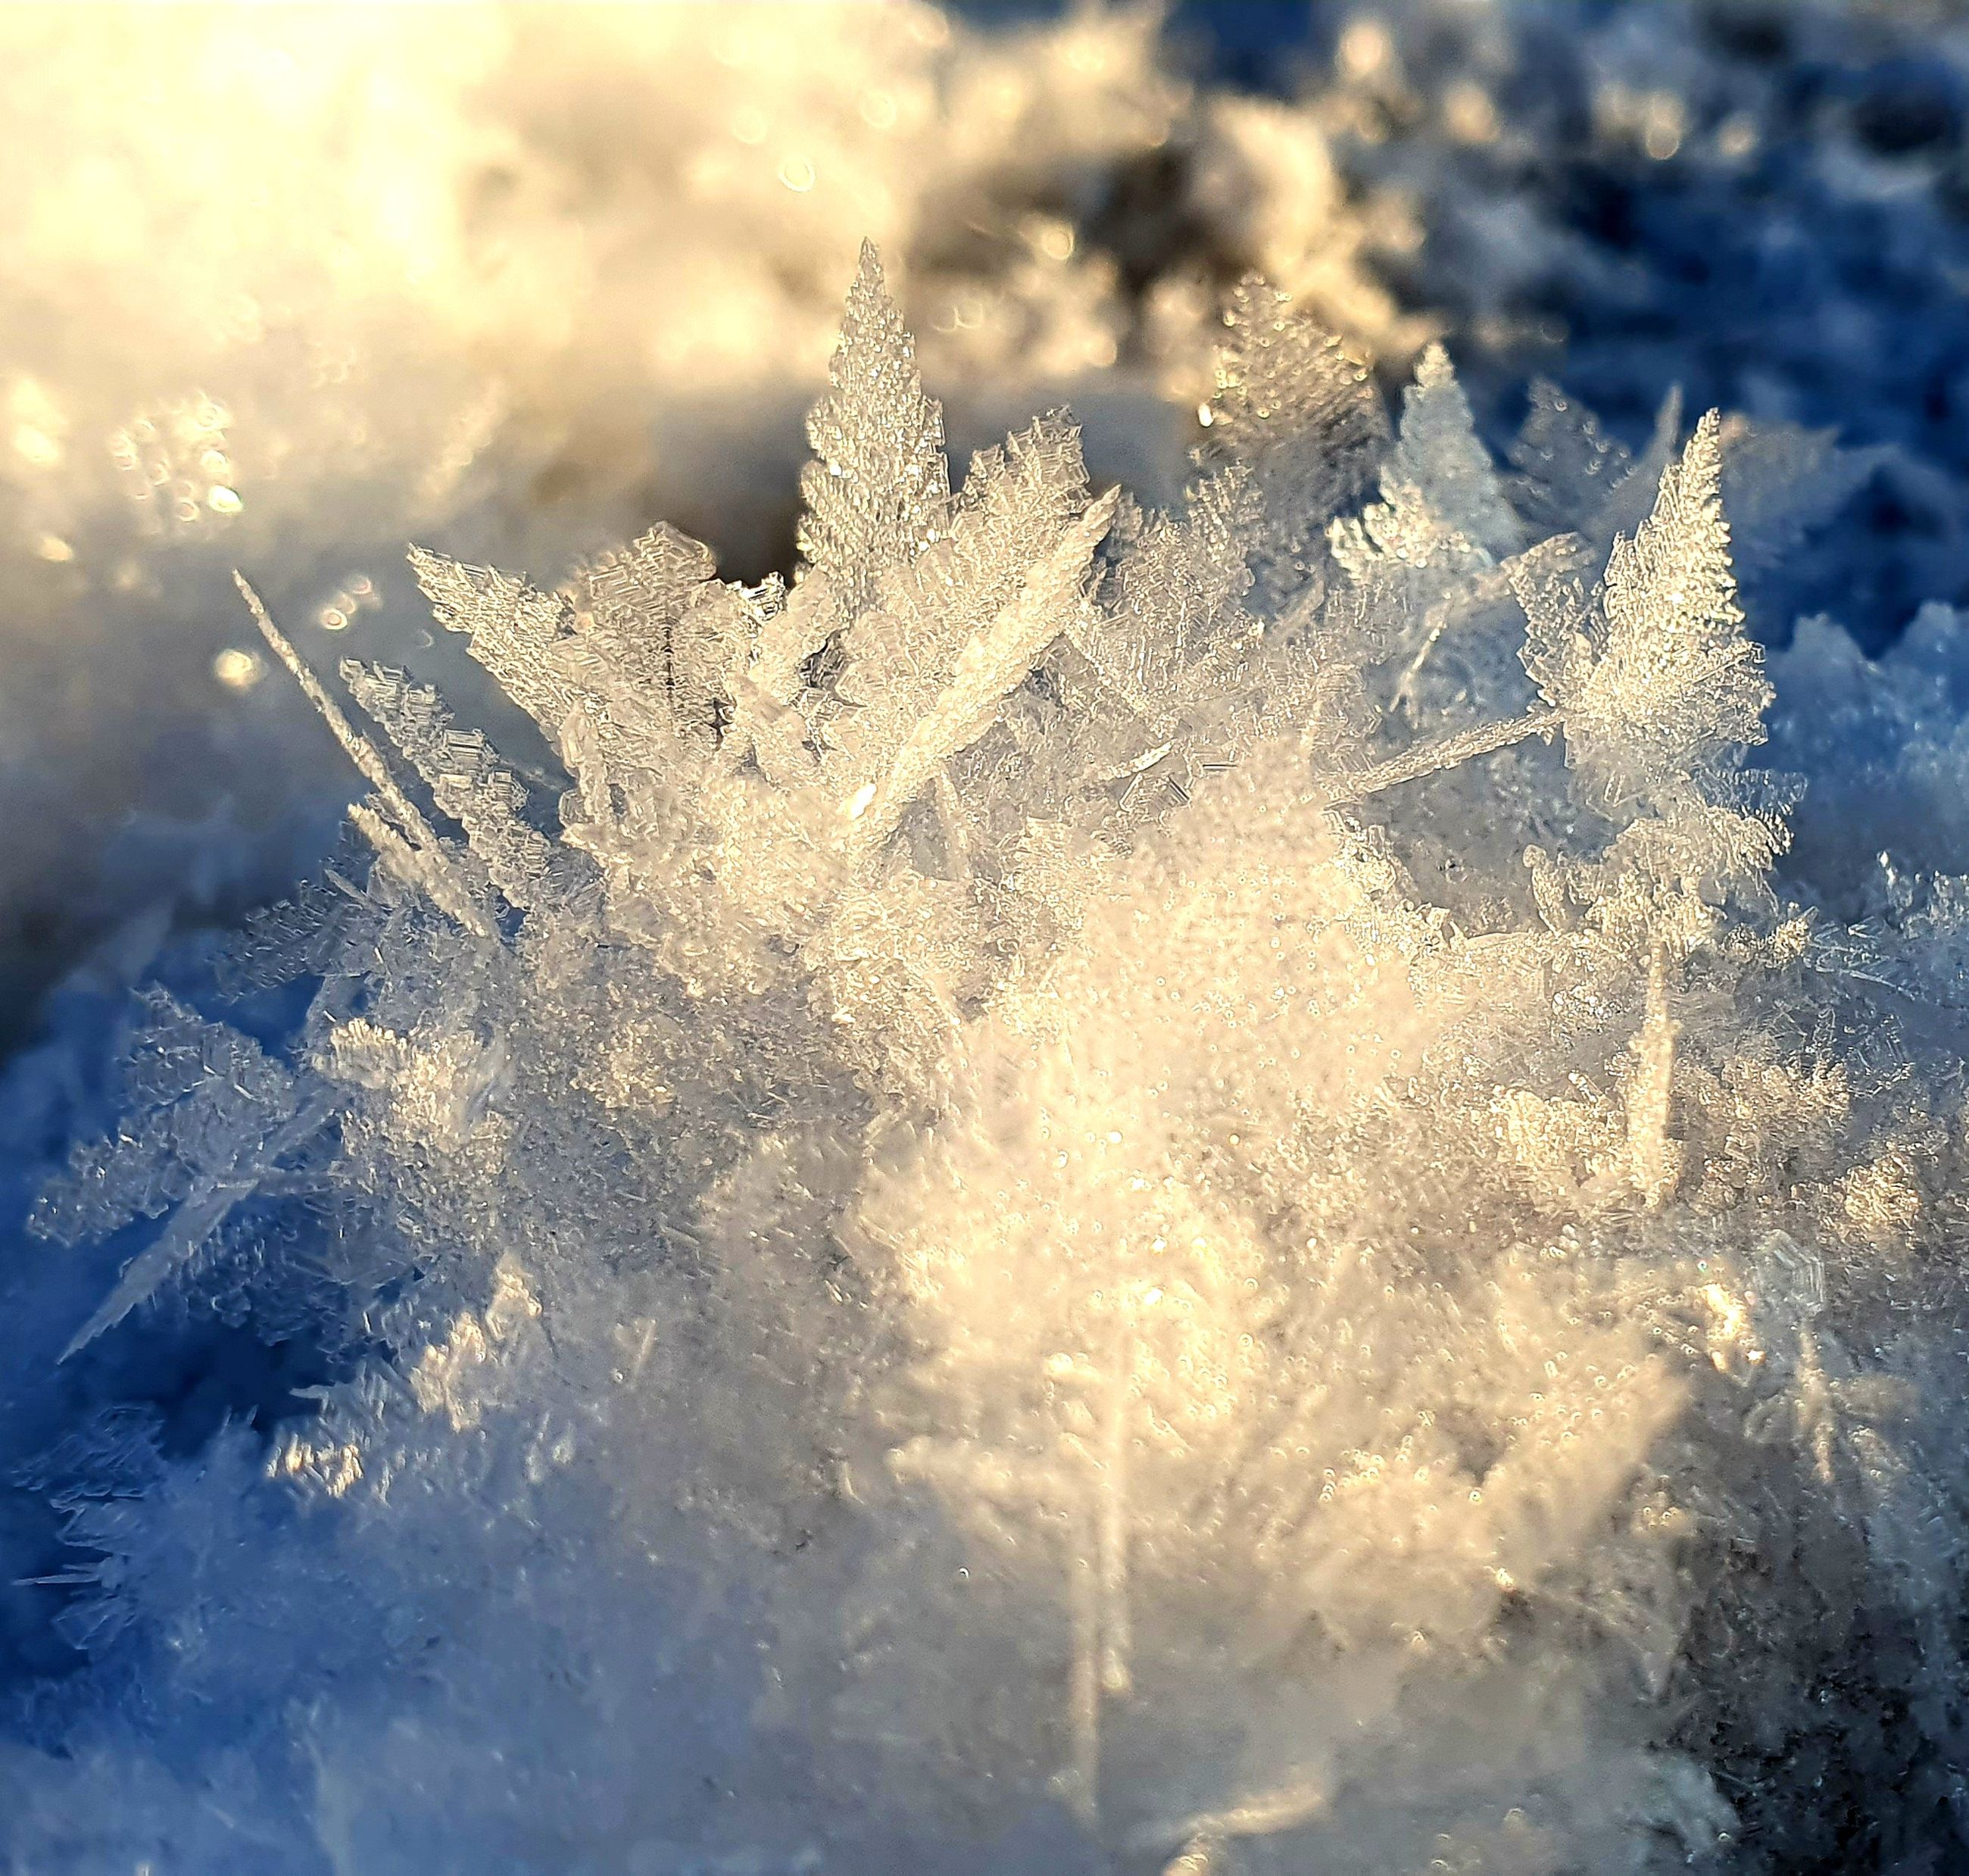 frost, freezing, winter, sunlight, nature, cold temperature, snow, frozen, ice, snowflake, sky, reflection, no people, close-up, cloud, beauty in nature, macro photography, branch, outdoors, tree, water, environment, backgrounds, day, plant, blue